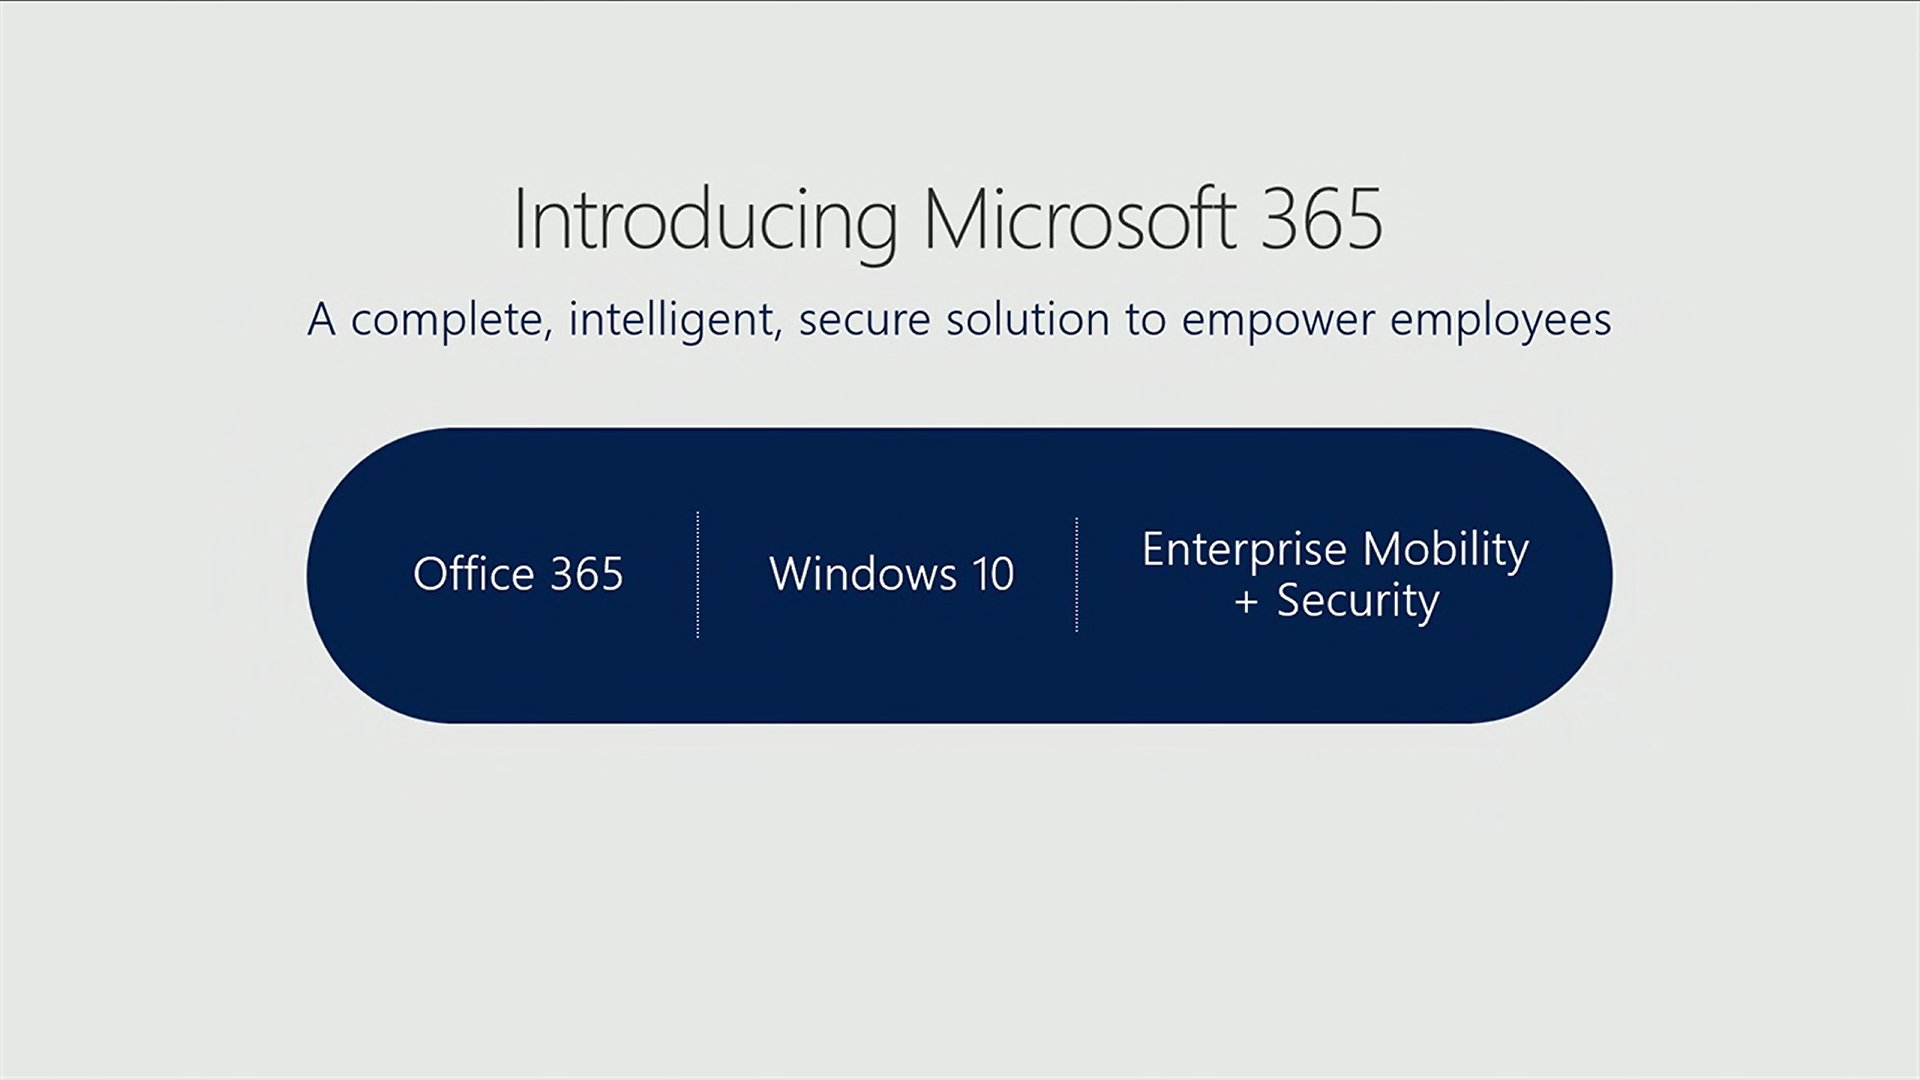 You need a much more integrated system to bring people together.. #MSInspire  #Microsoft365 https://t.co/Dfls7SxdR7 https://t.co/625jCAIuNm